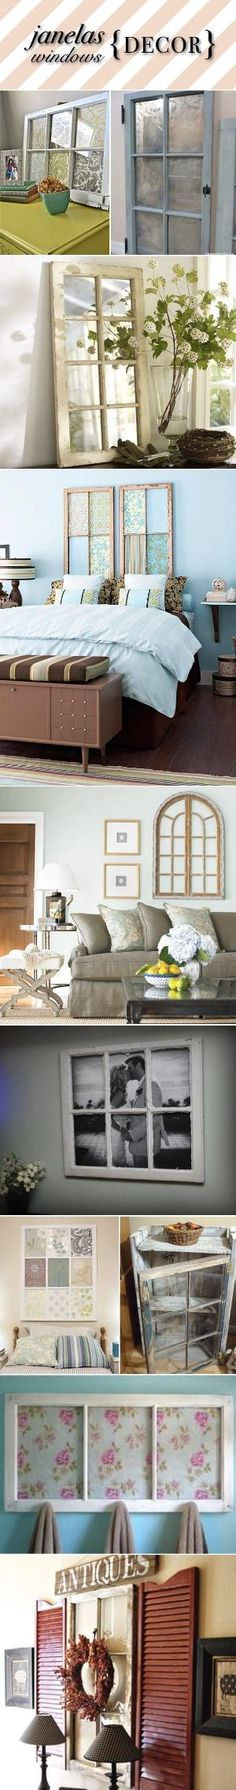 Repurpose Ideas with old windows! by gayle